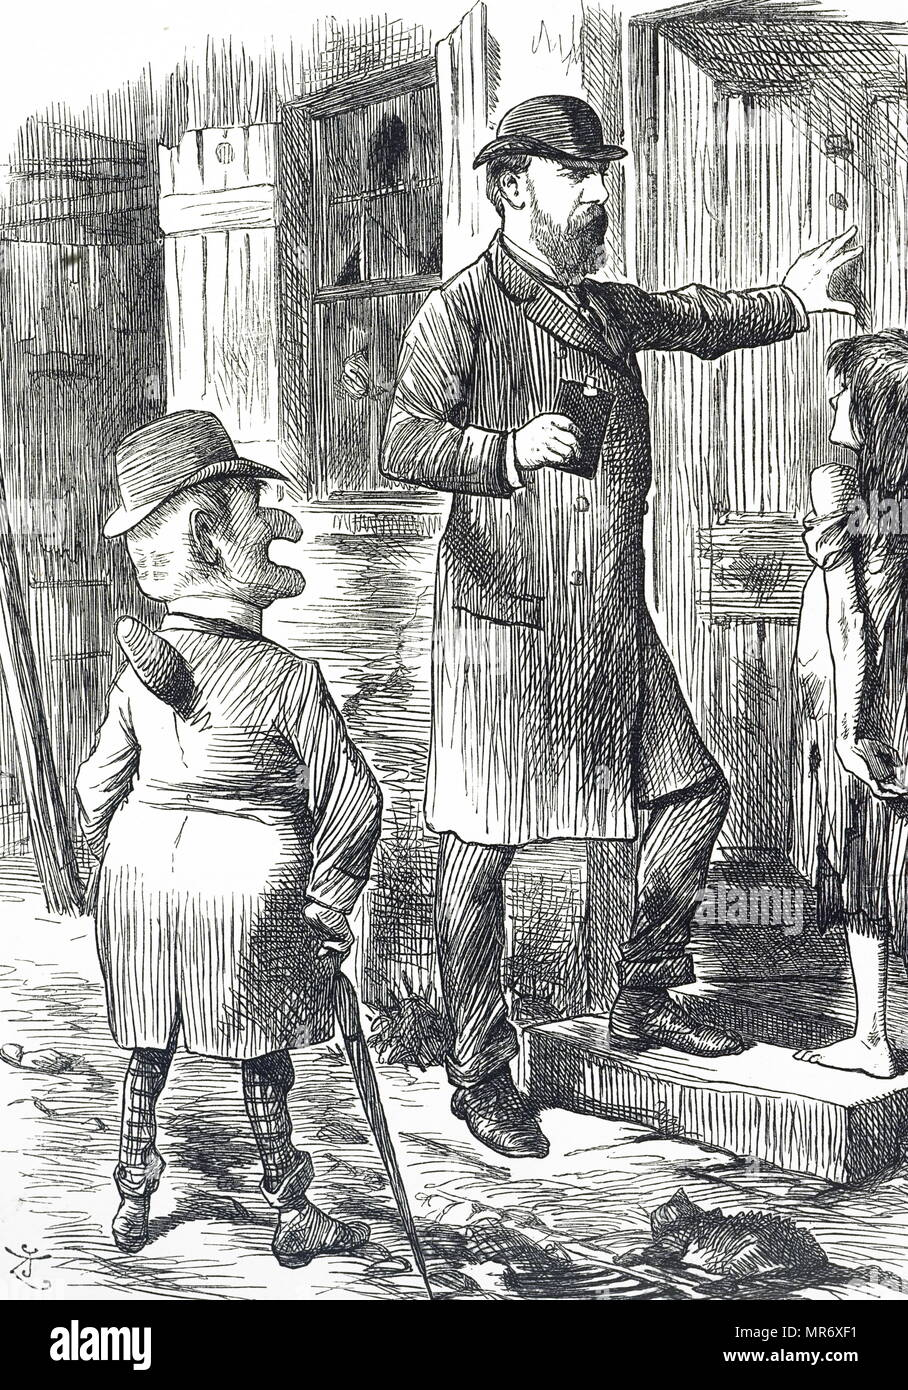 Cartoon commenting on the state of the living conditions of London's poor. Dated 19th century - Stock Image